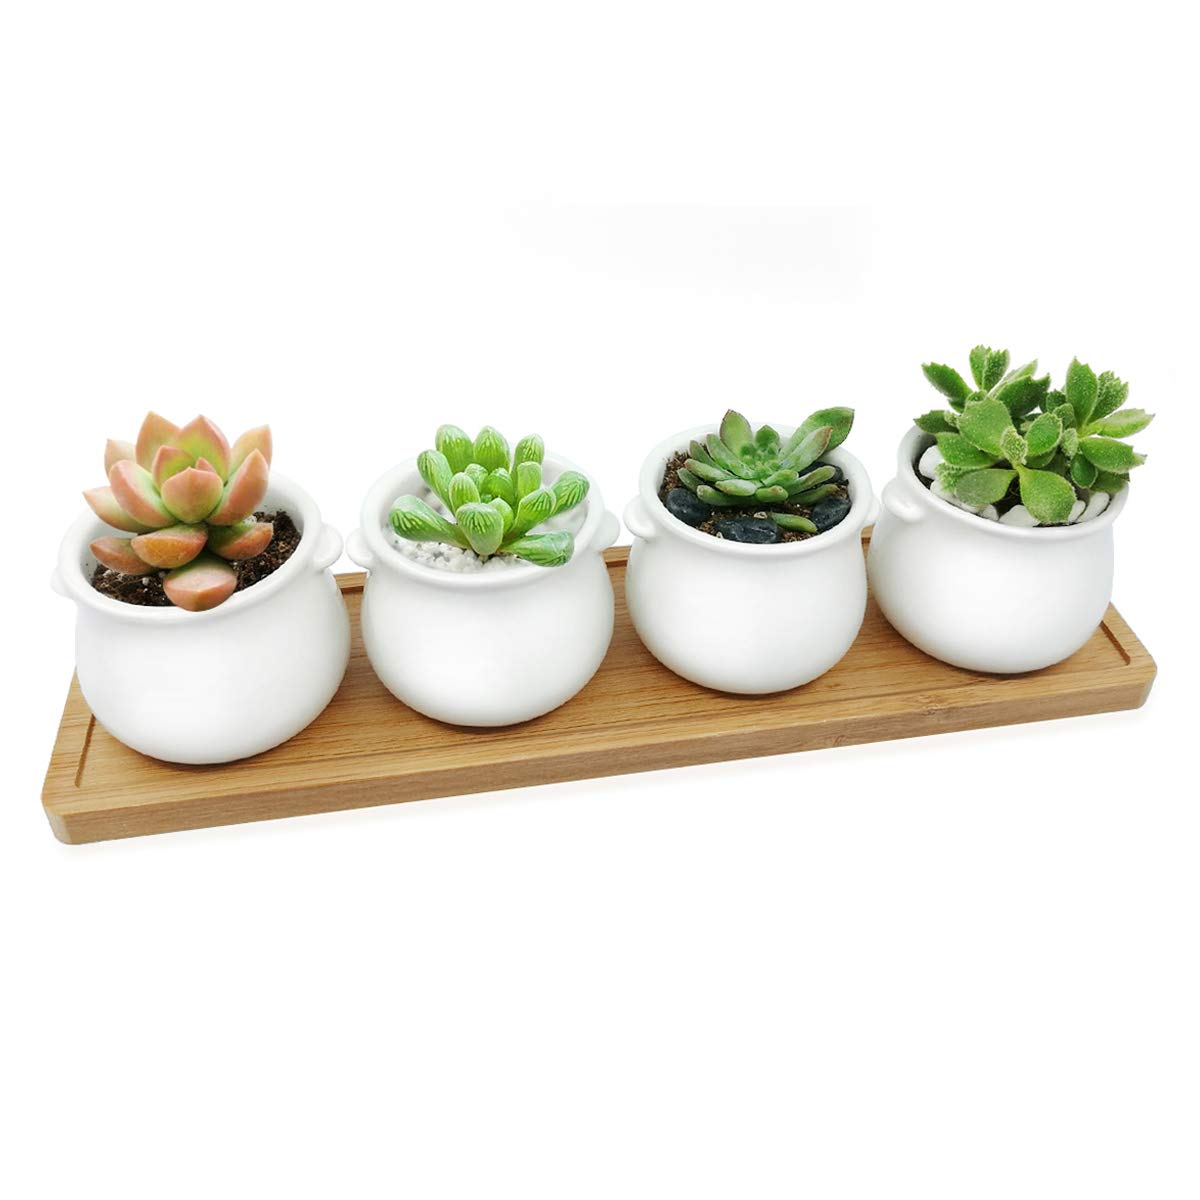 Mini Succulent Pots Set of 4 White Ceramic Ear Shaped Design Succulent Planter Pot with Drain Holes and Bamboo Tray for Indoor Outdoor Home Garden Kitchen Decor